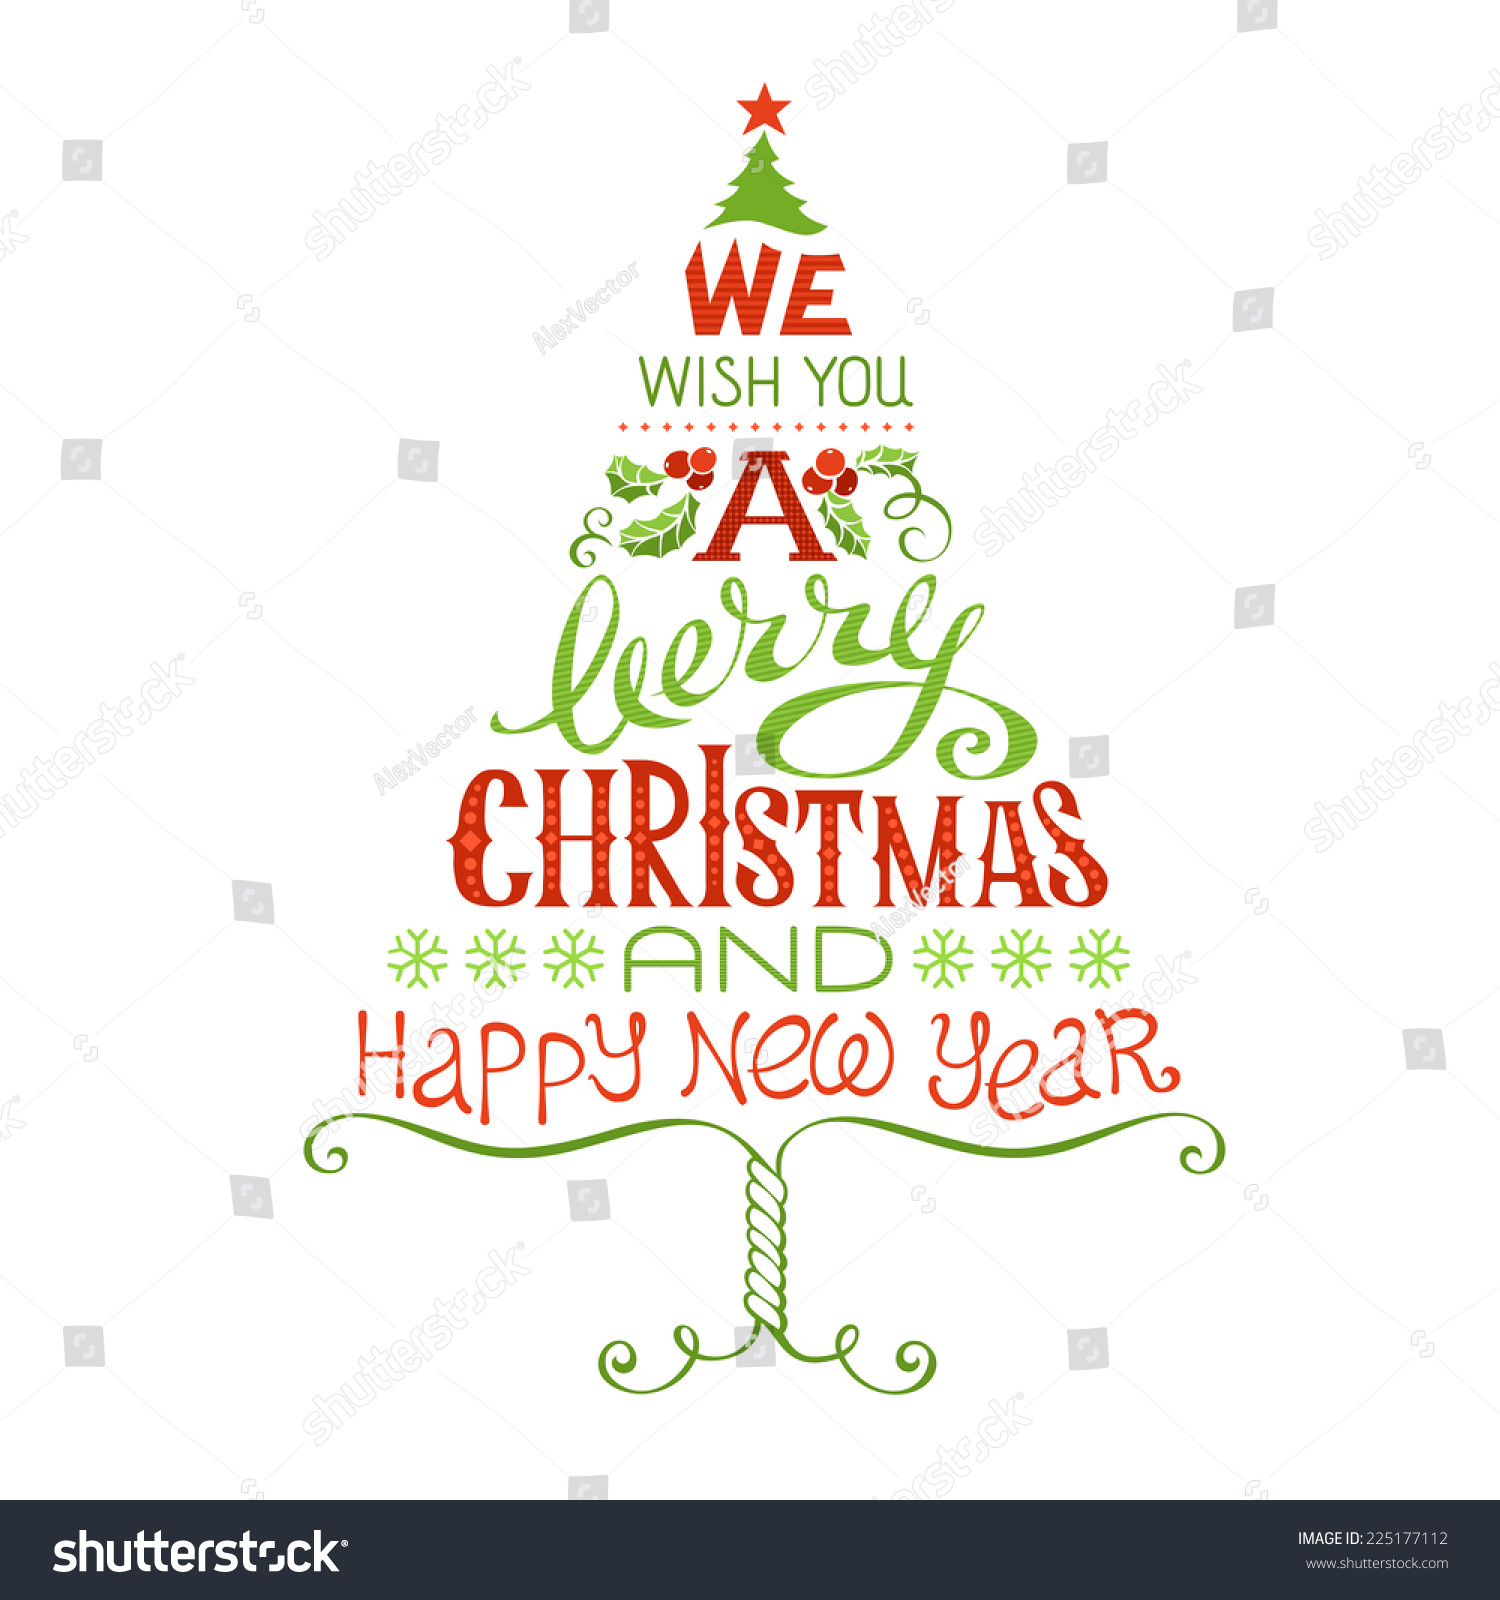 we wish you merry christmas happy stock vector royalty free 225177112 https www shutterstock com image vector we wish you merry christmas happy 225177112